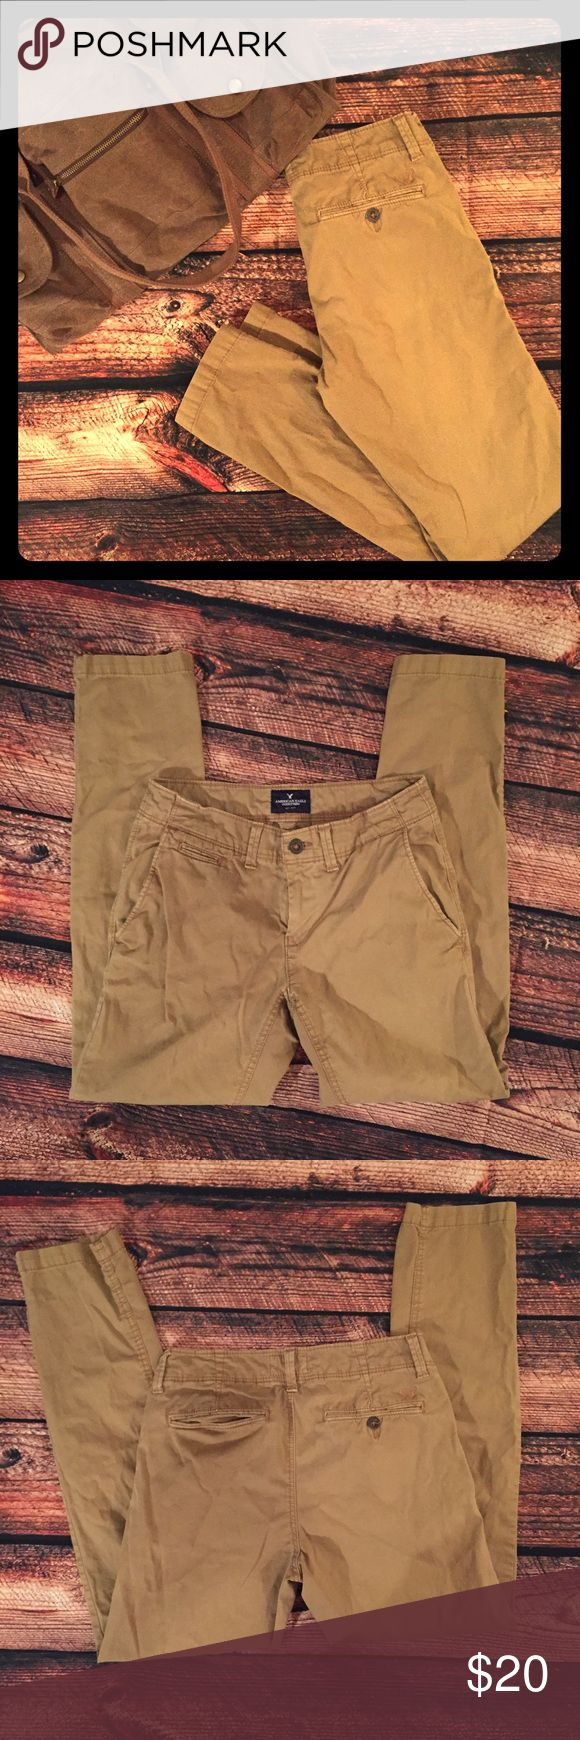 American Eagle Mens Khakis Skinny Dapper American Eagle Khakis! Awesome condition. 29/32. Skinny cut. •No returns, no trades •10% discount on 3+ items American Eagle Outfitters Pants Chinos & Khakis